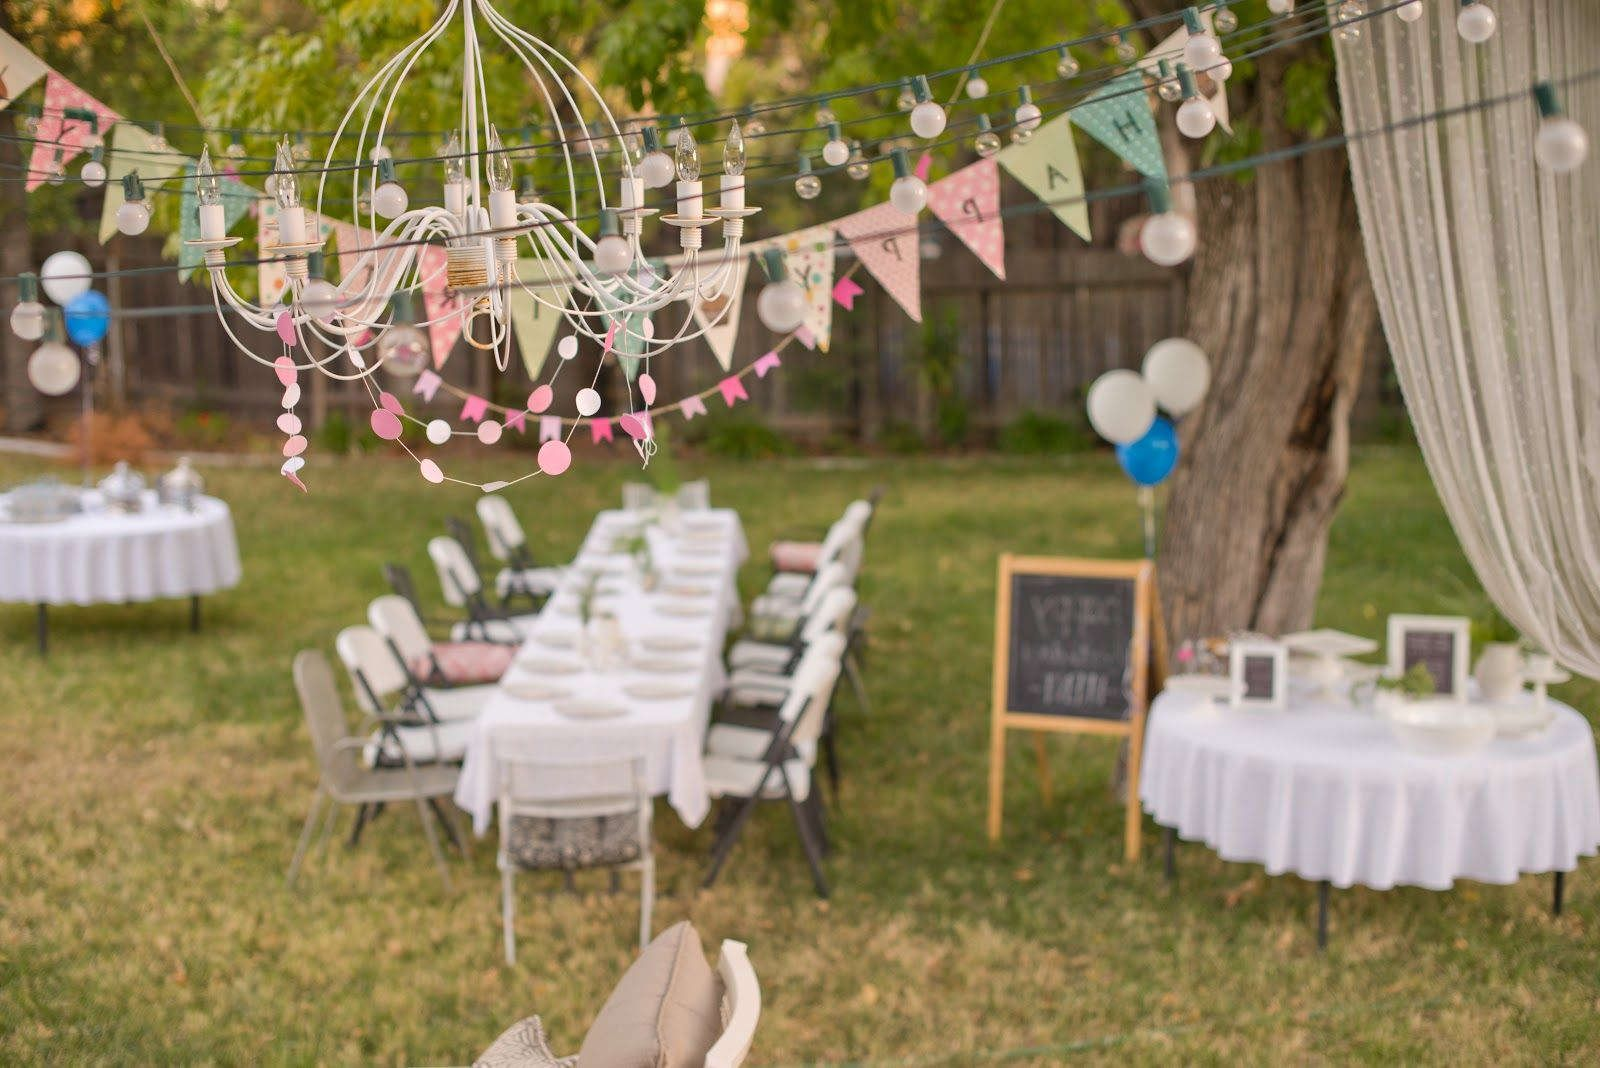 Backyard Party Decorating Ideas planning a backyard bridal shower ideas for a fun outdoor party Backyard Birthday Party Decorating Ideas Google Search